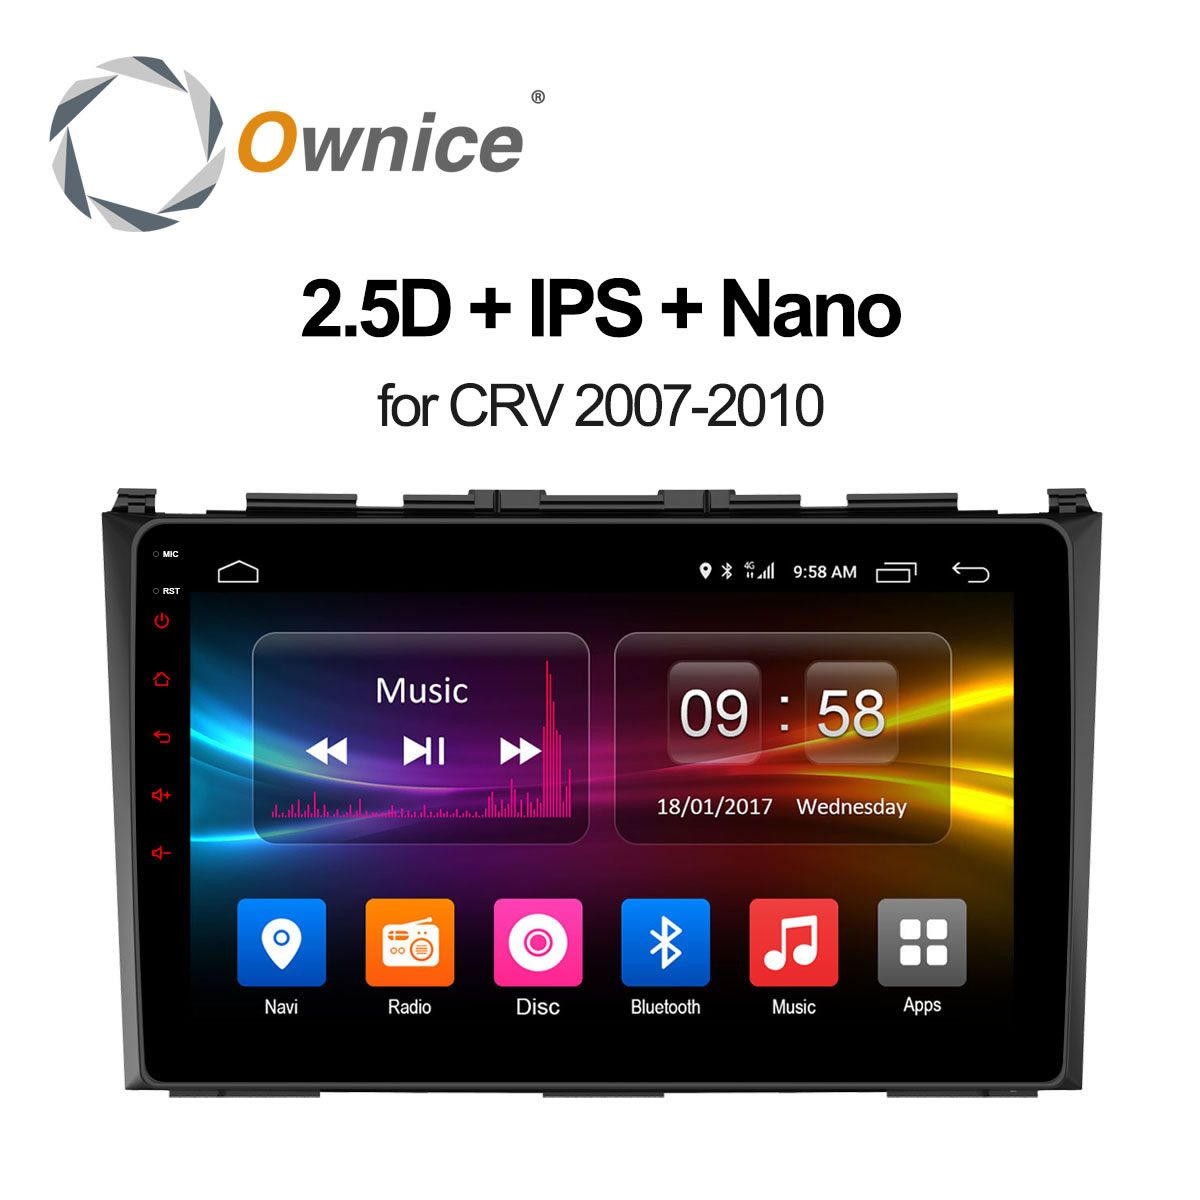 Ownice C500+ Android 6.0 Octa 8 Core Car DVD Player For Honda 2007 2008 2009 2010 CRV CR-V GPS Navigation Stereo Video 4G LTE